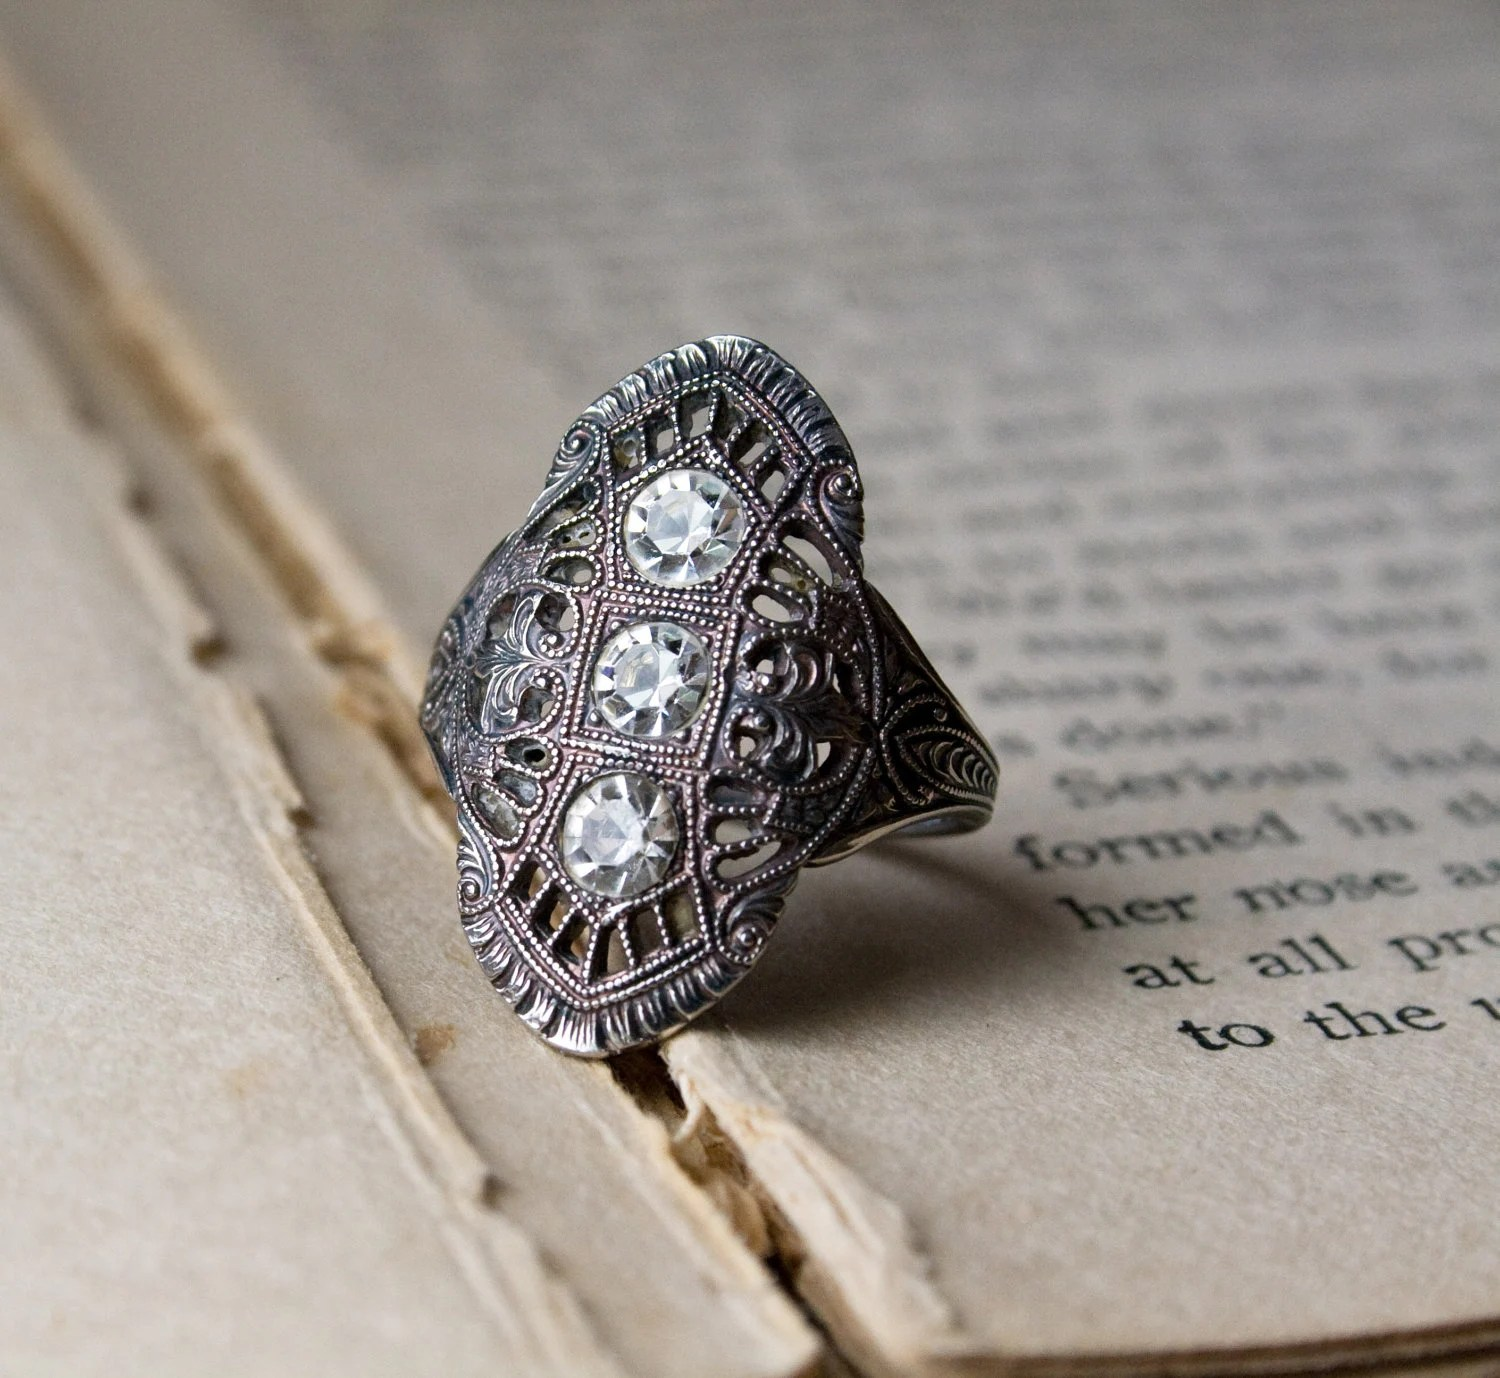 Art Deco Ring 1920s Jewelry 3 Jewel Filigree Cocktail Ring